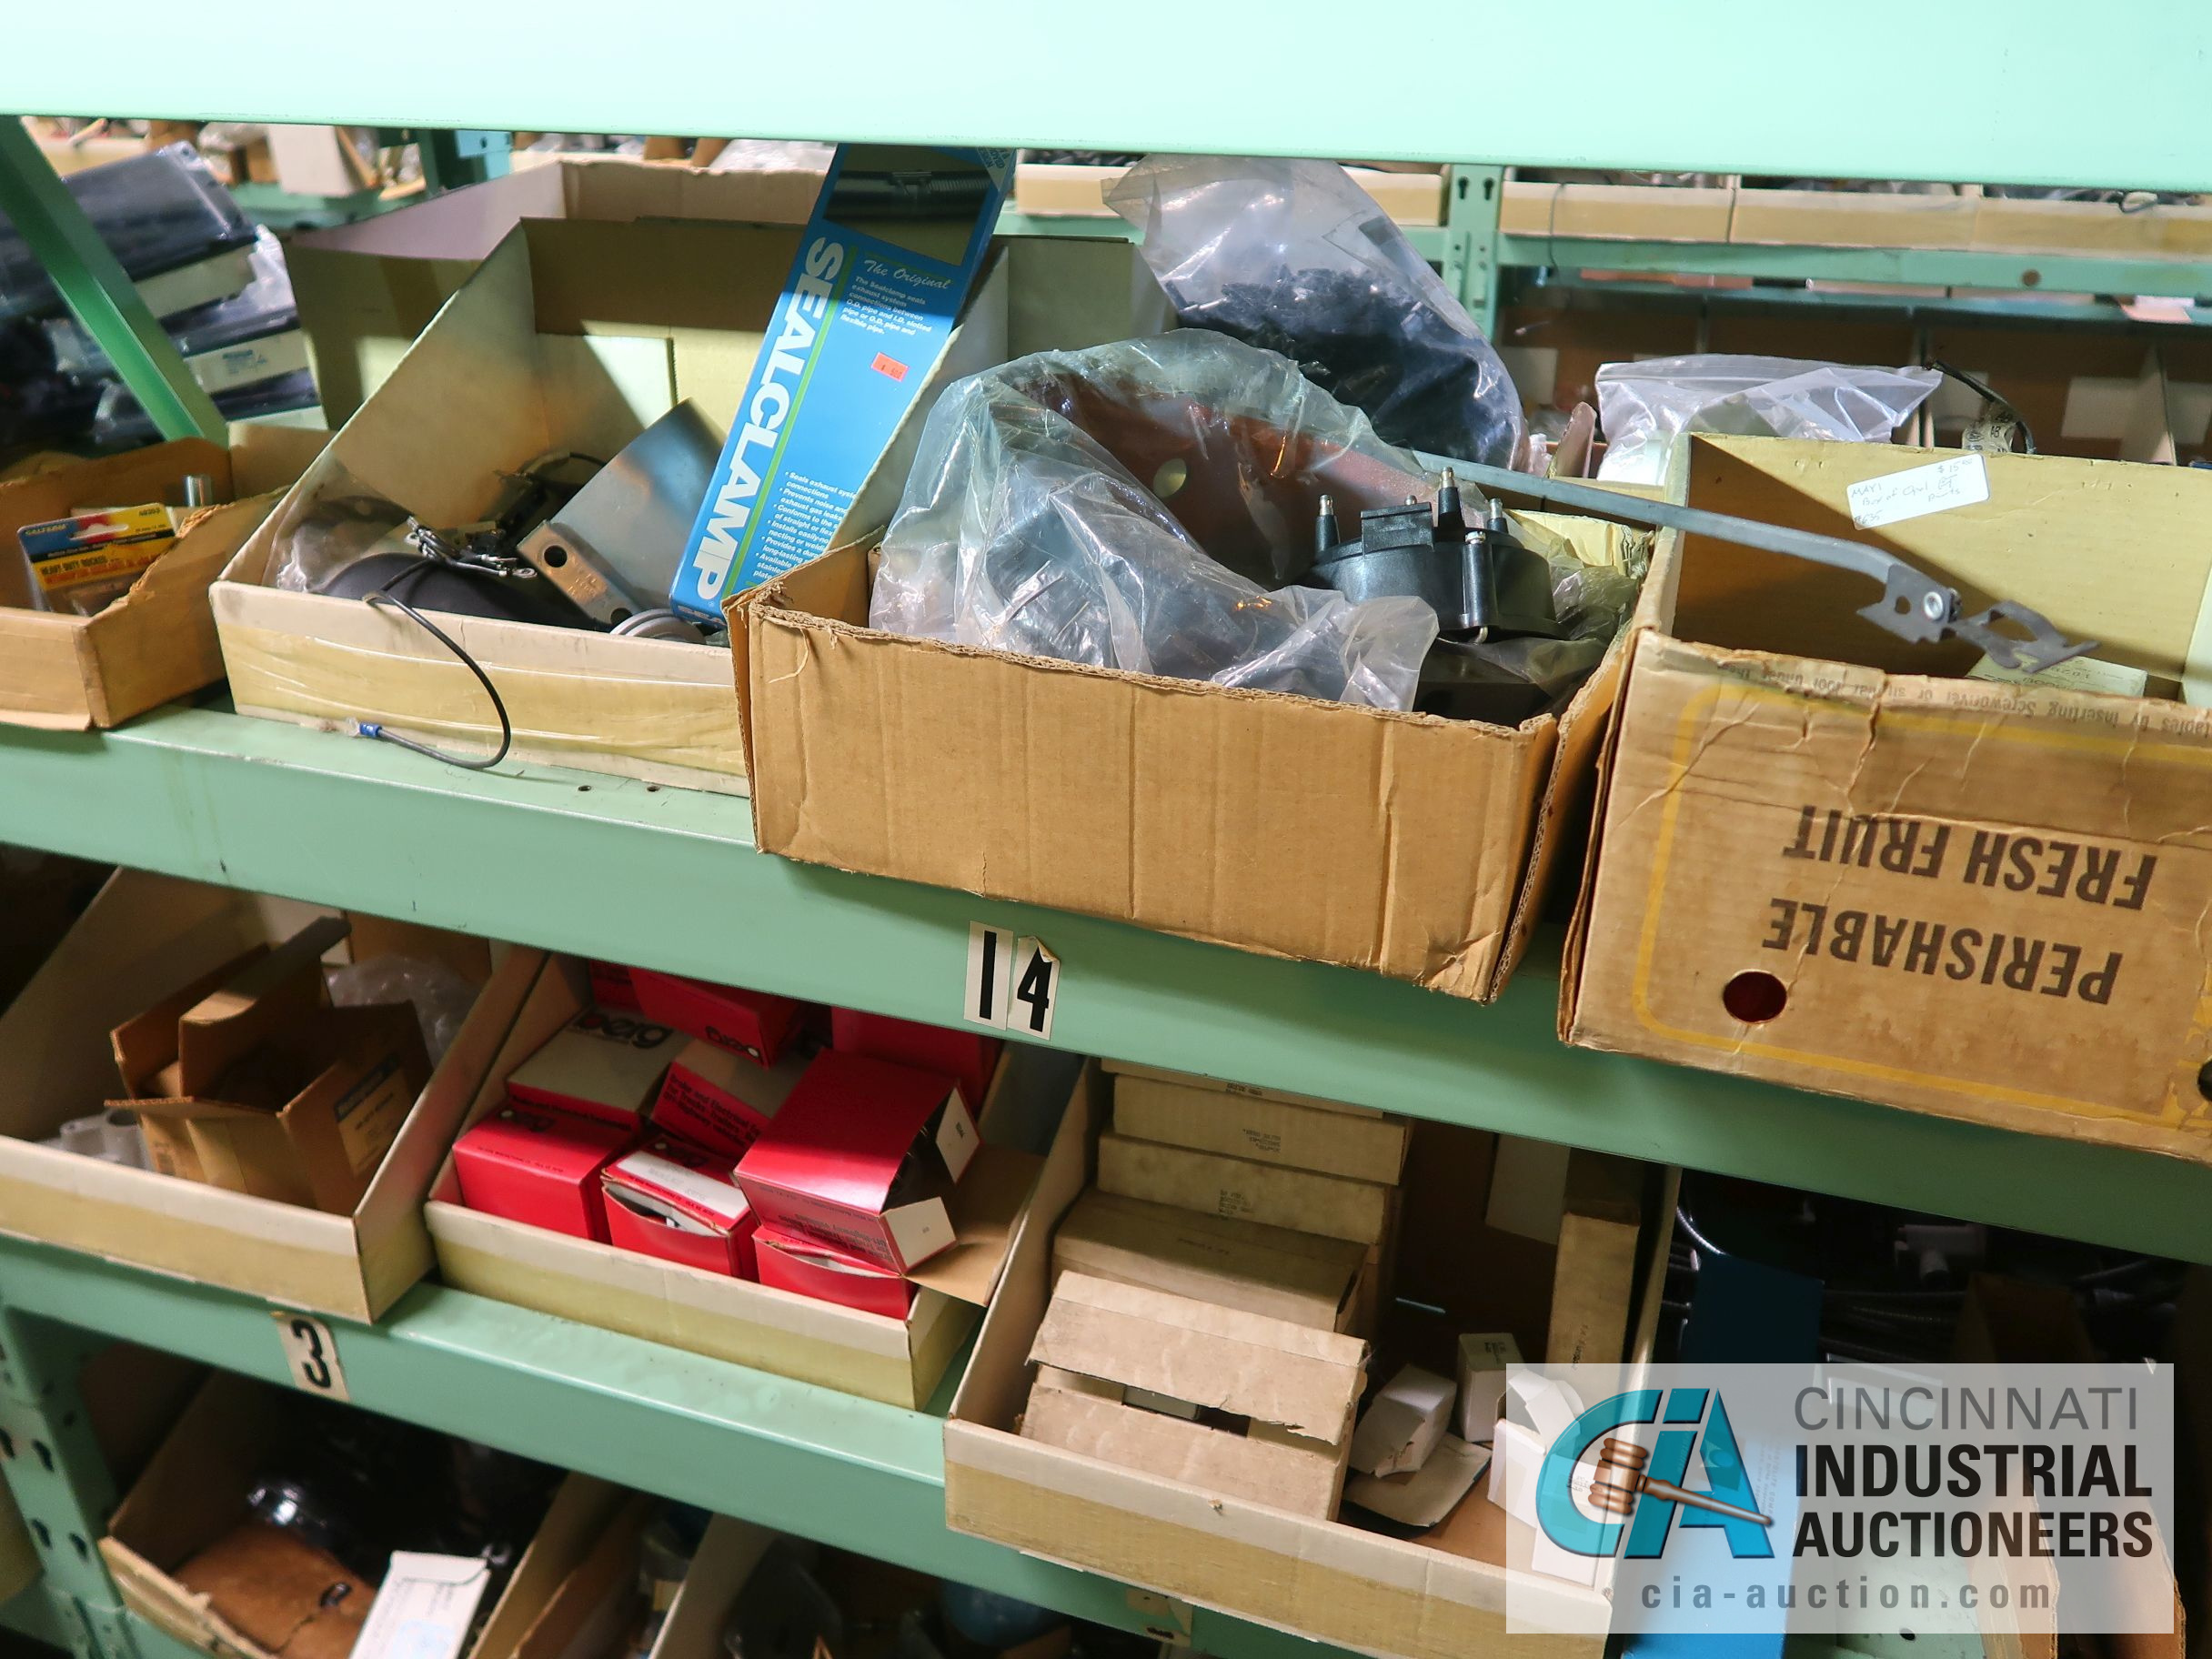 CONTENTS OF (5) RACKS INCLUDING MISCELLANEOUS AUTOMOTIVE PARTS, LIGHTS, FILTERS, ENGINE PARTS, RIMS, - Image 11 of 29